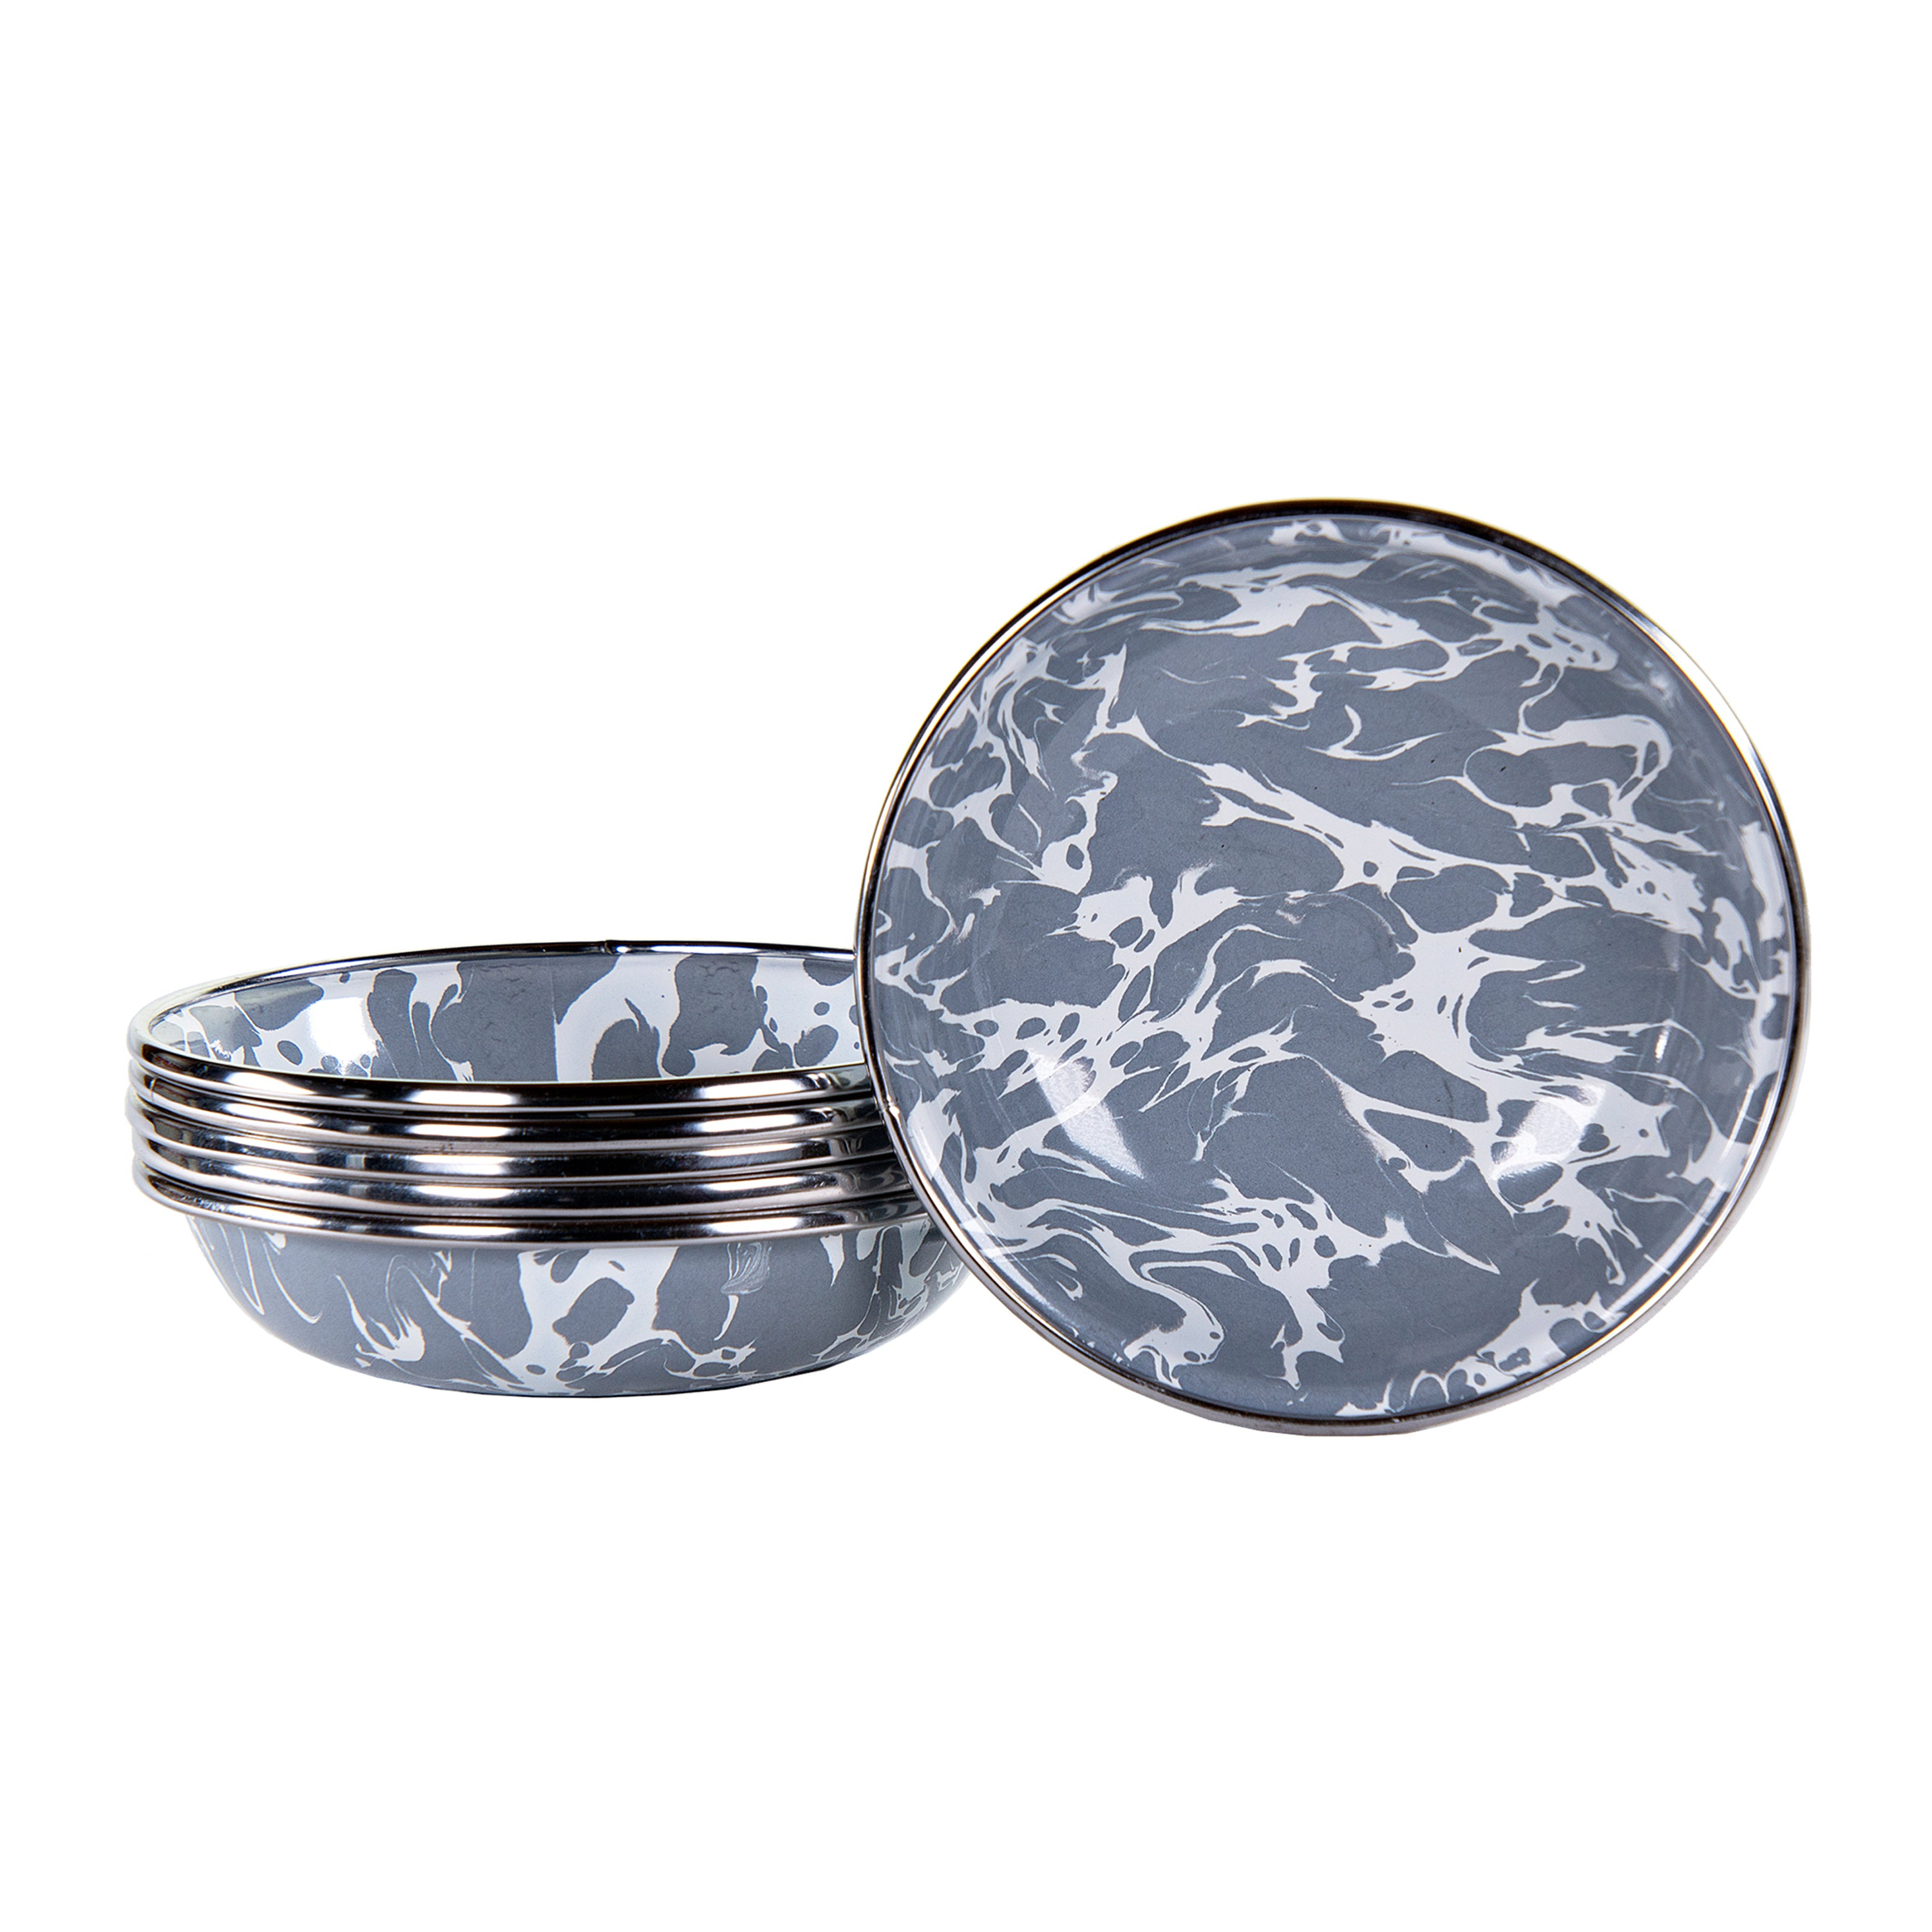 GY59S6 - Set of 6 Grey Swirl Tasting Dishes Image 1